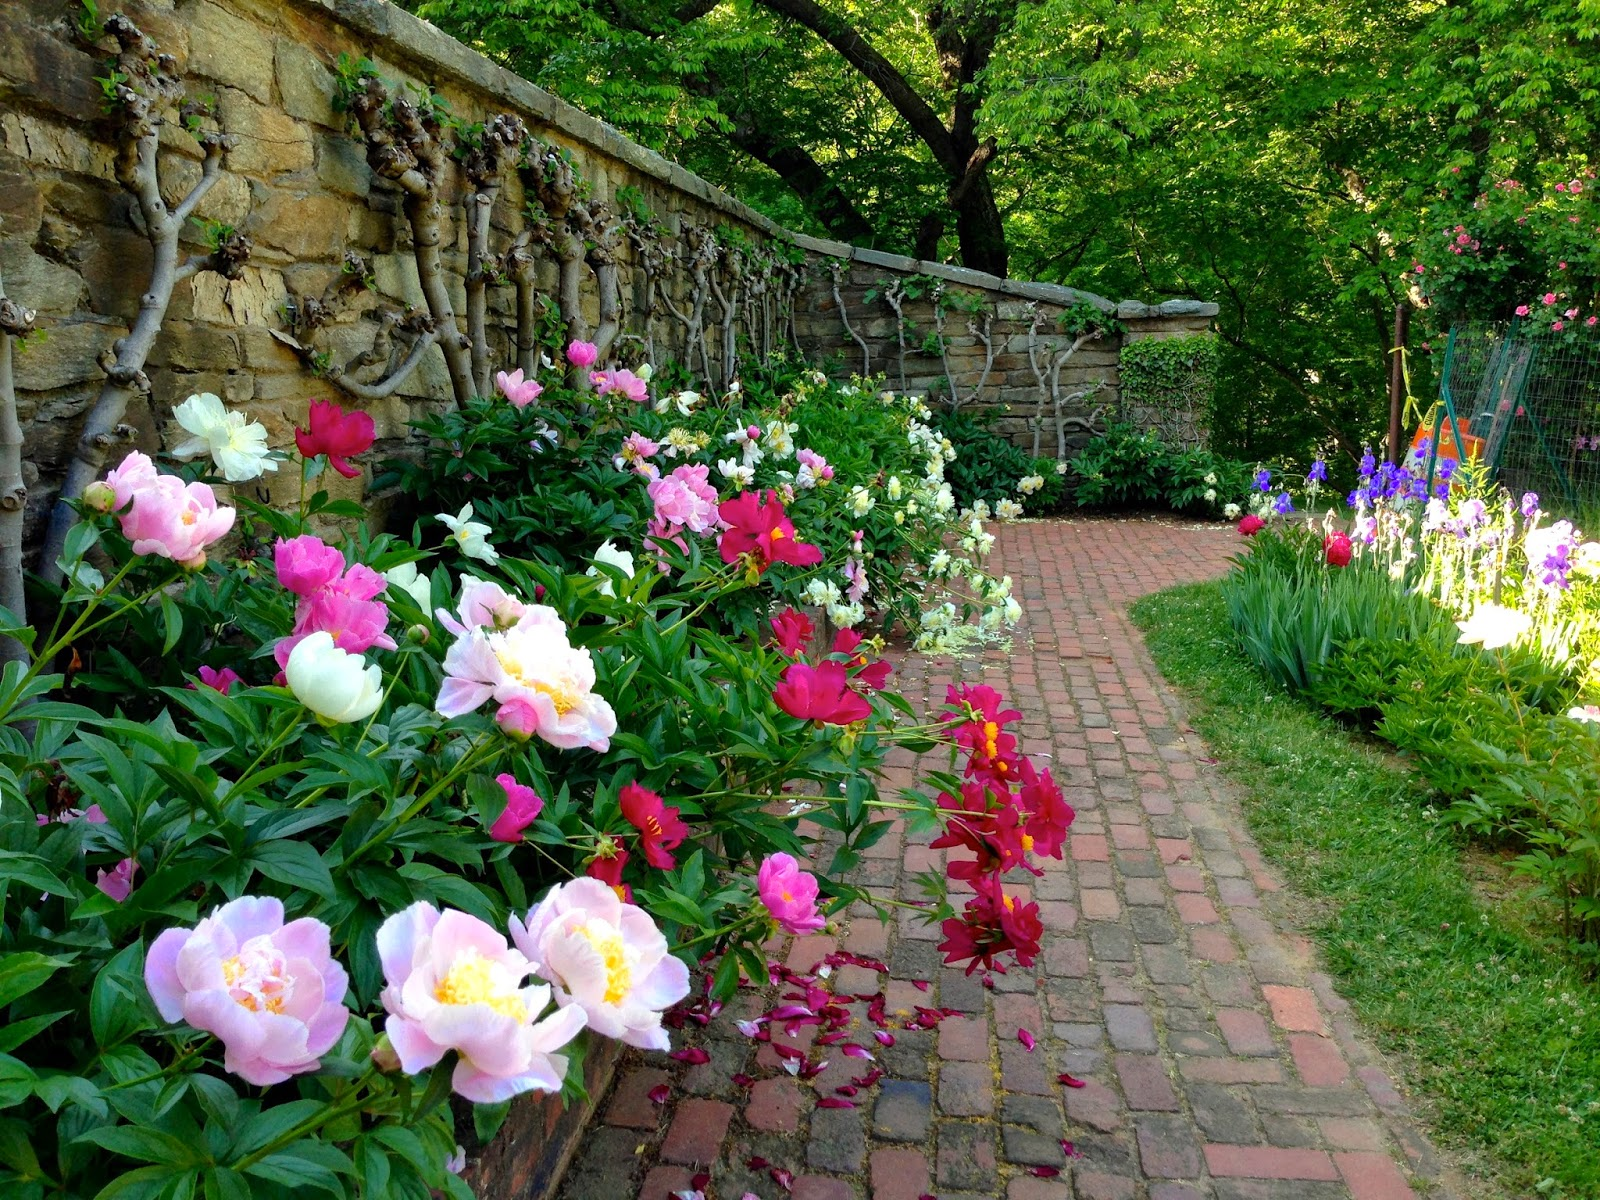 In And Out Of My Garden: Dumbarton Oaks Gardens